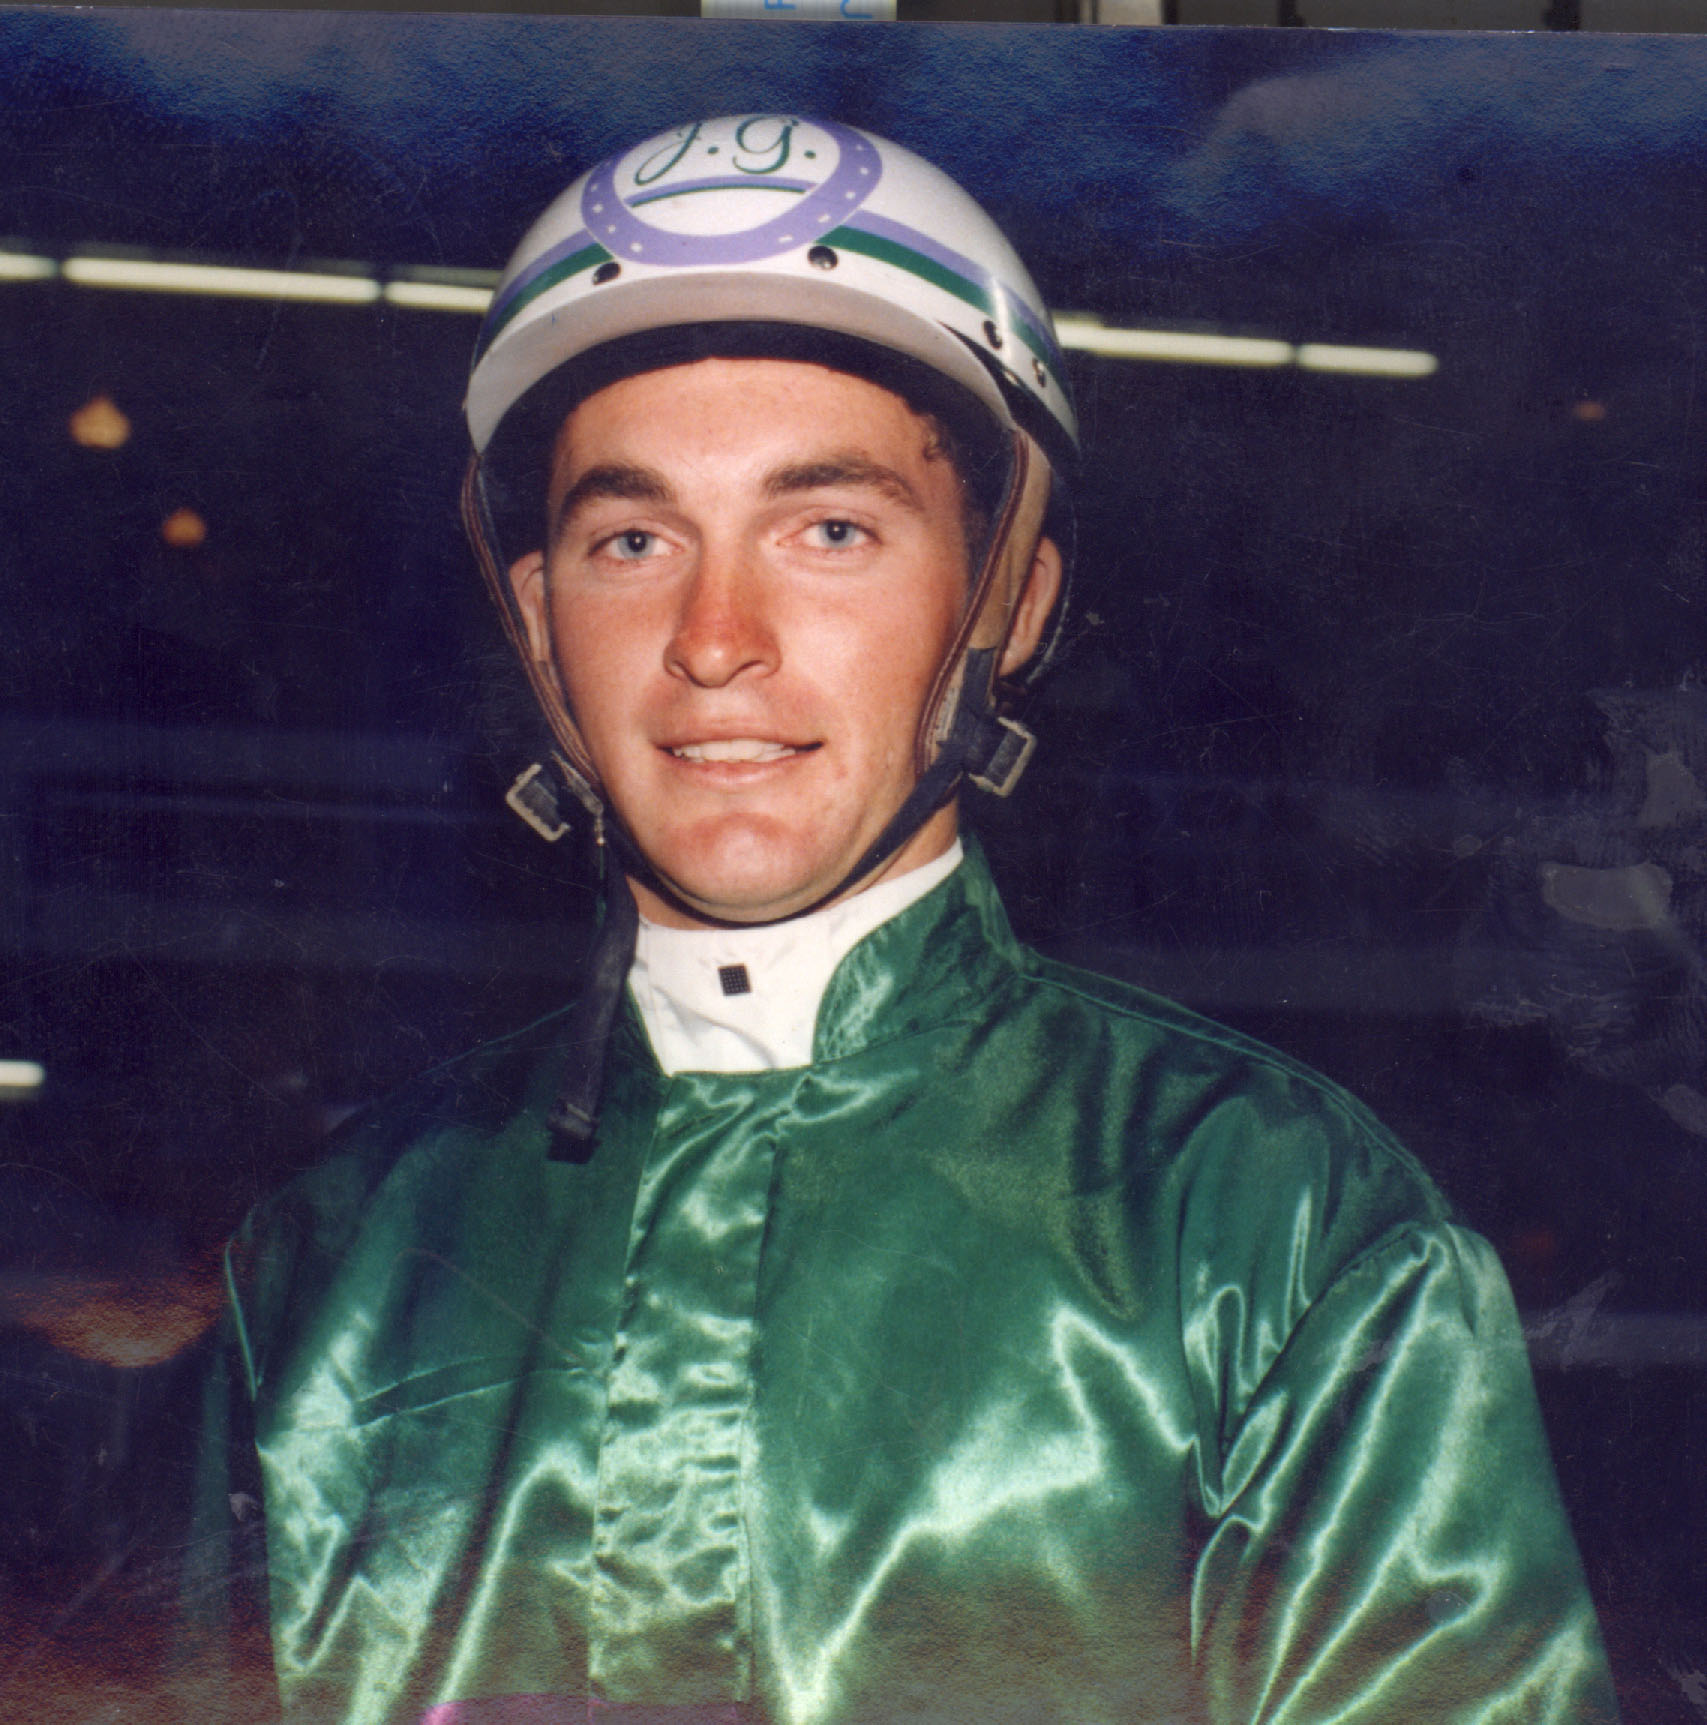 Image courtesy National Trotguide - A young Jason Proctor at the start of his race driving career.